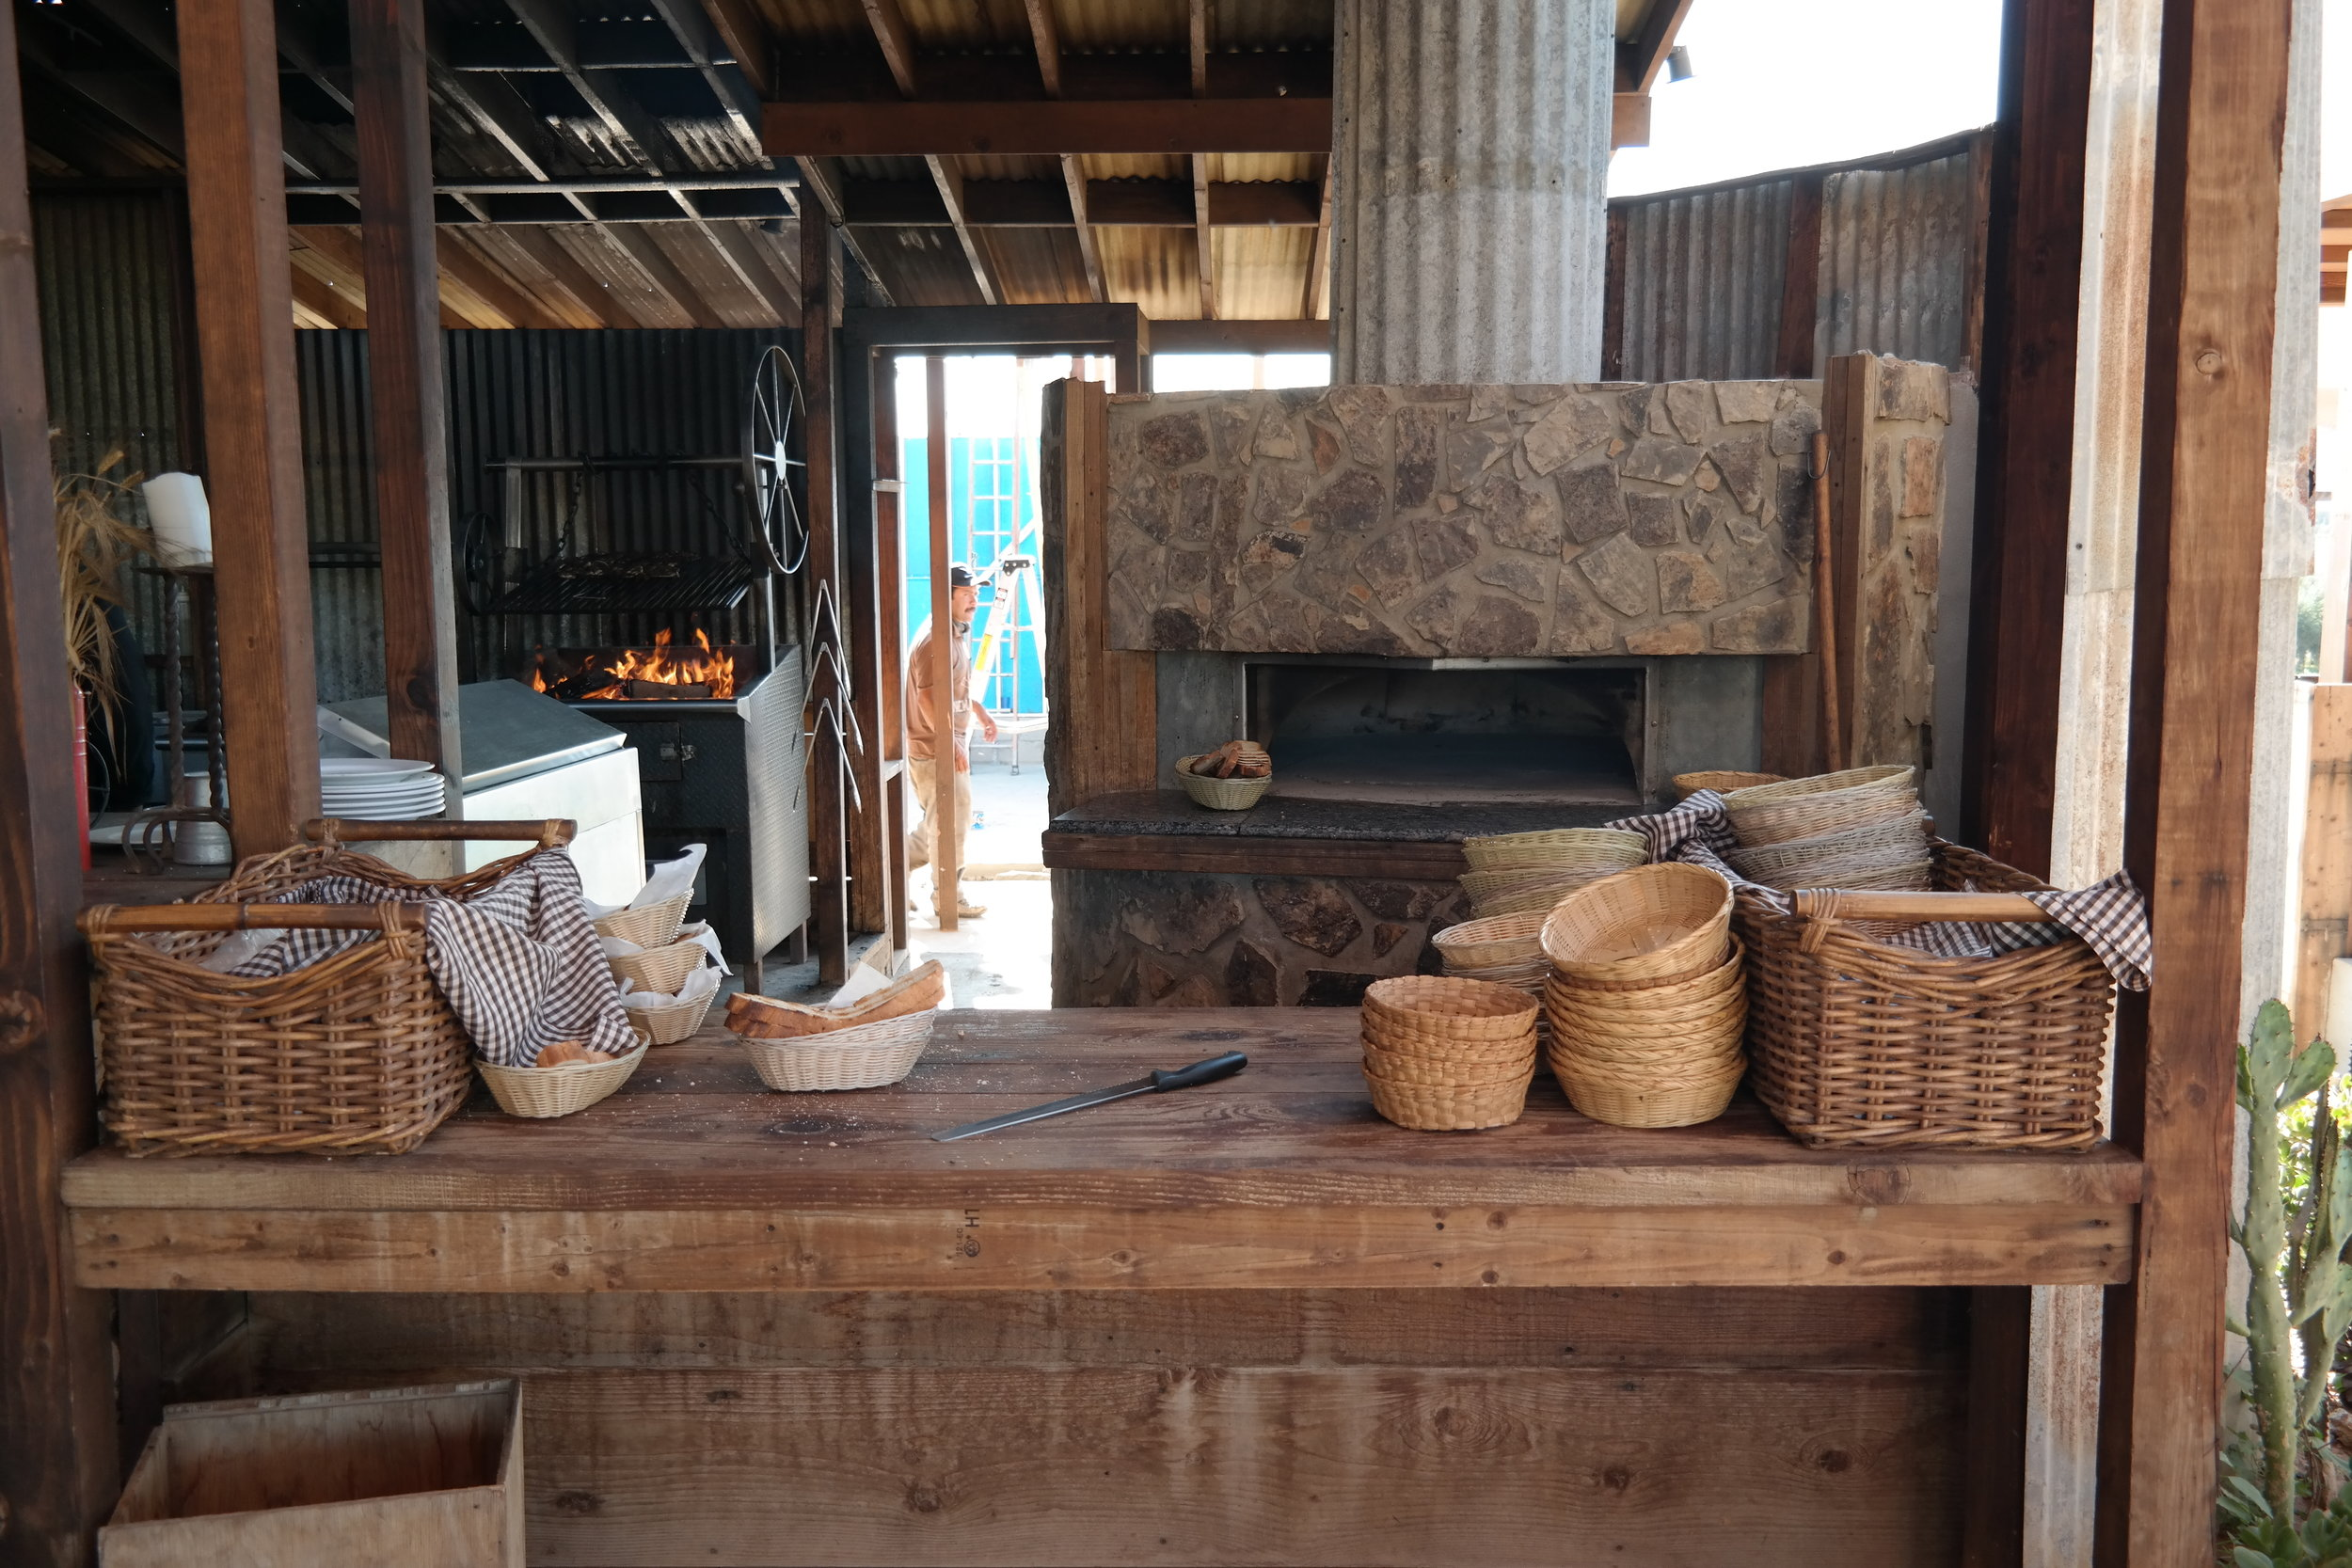 Fresh bread from the hearth